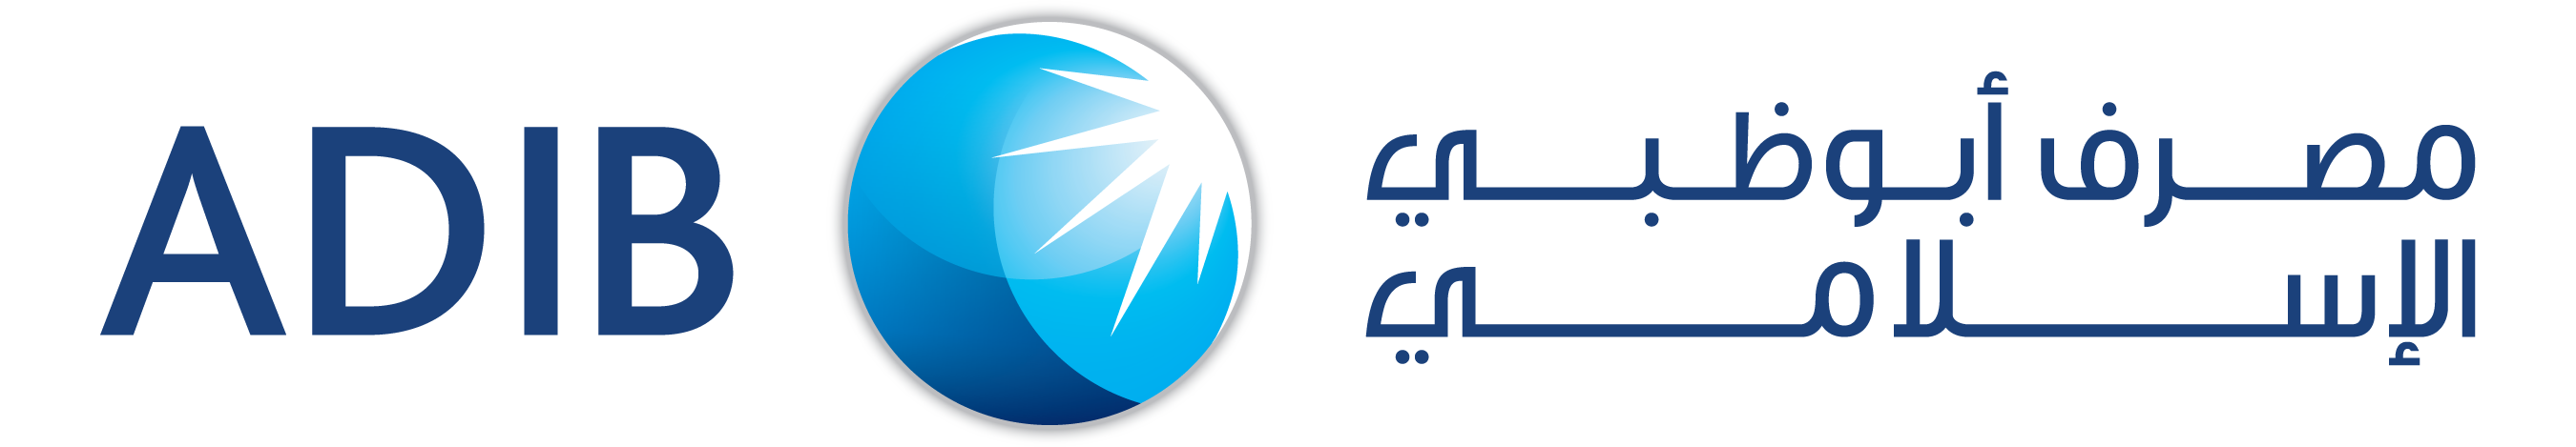 Abu Dhabi islamic Bank ( ADIB)